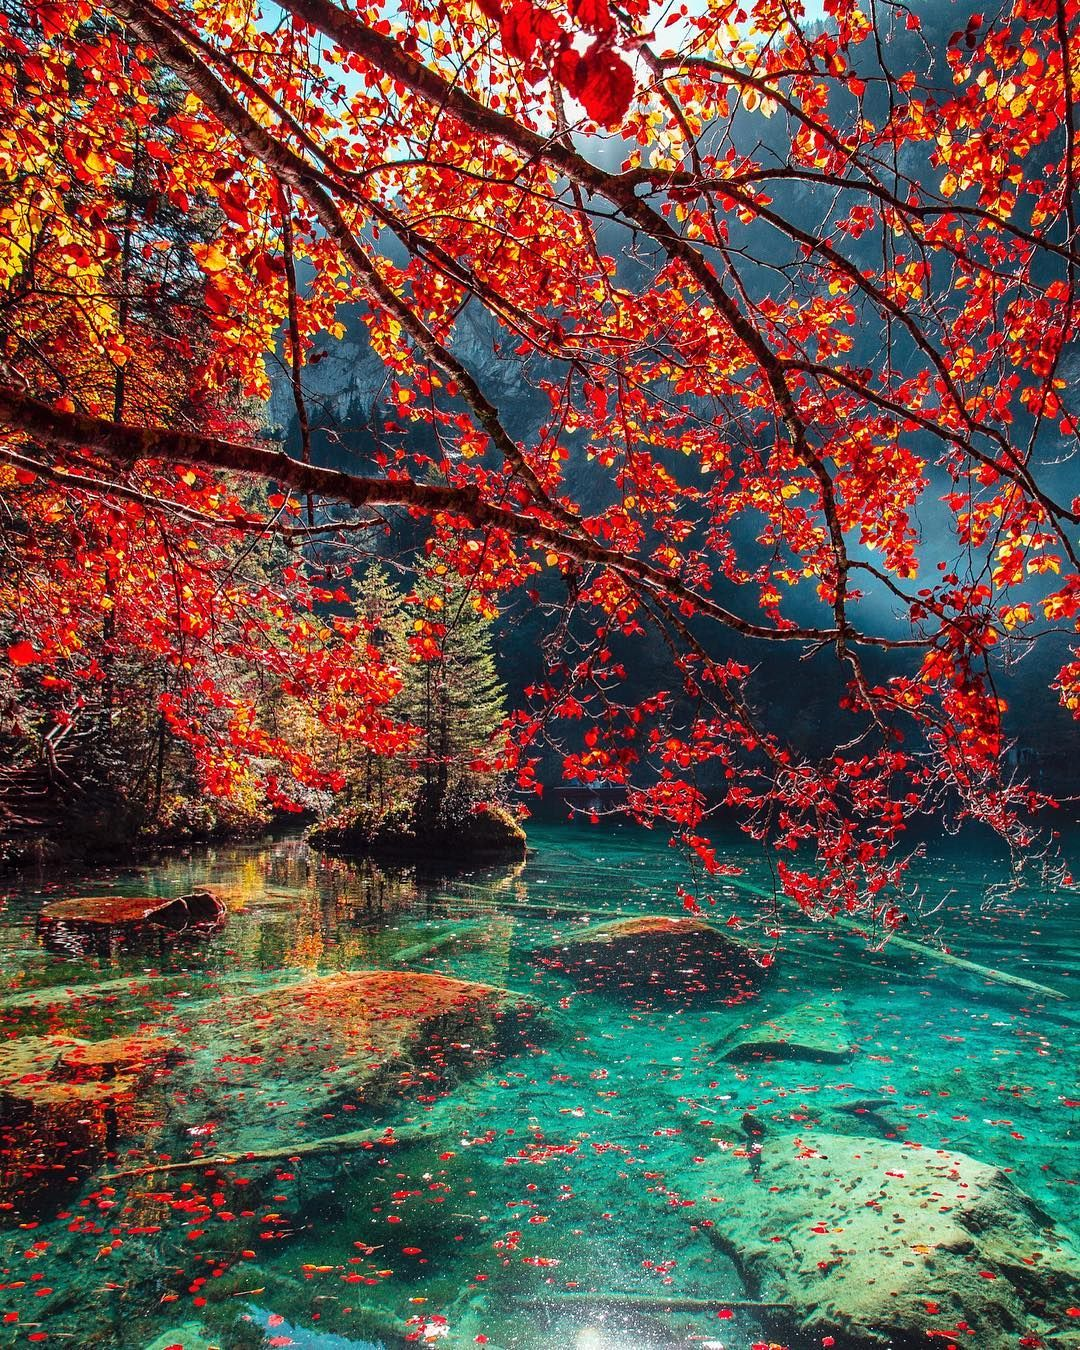 Https Designyoutrust Com 2019 06 Colorful Travel And Landscape Photography By Hatice Korkmaz In 2020 Nature Photography Landscape Photography Nature